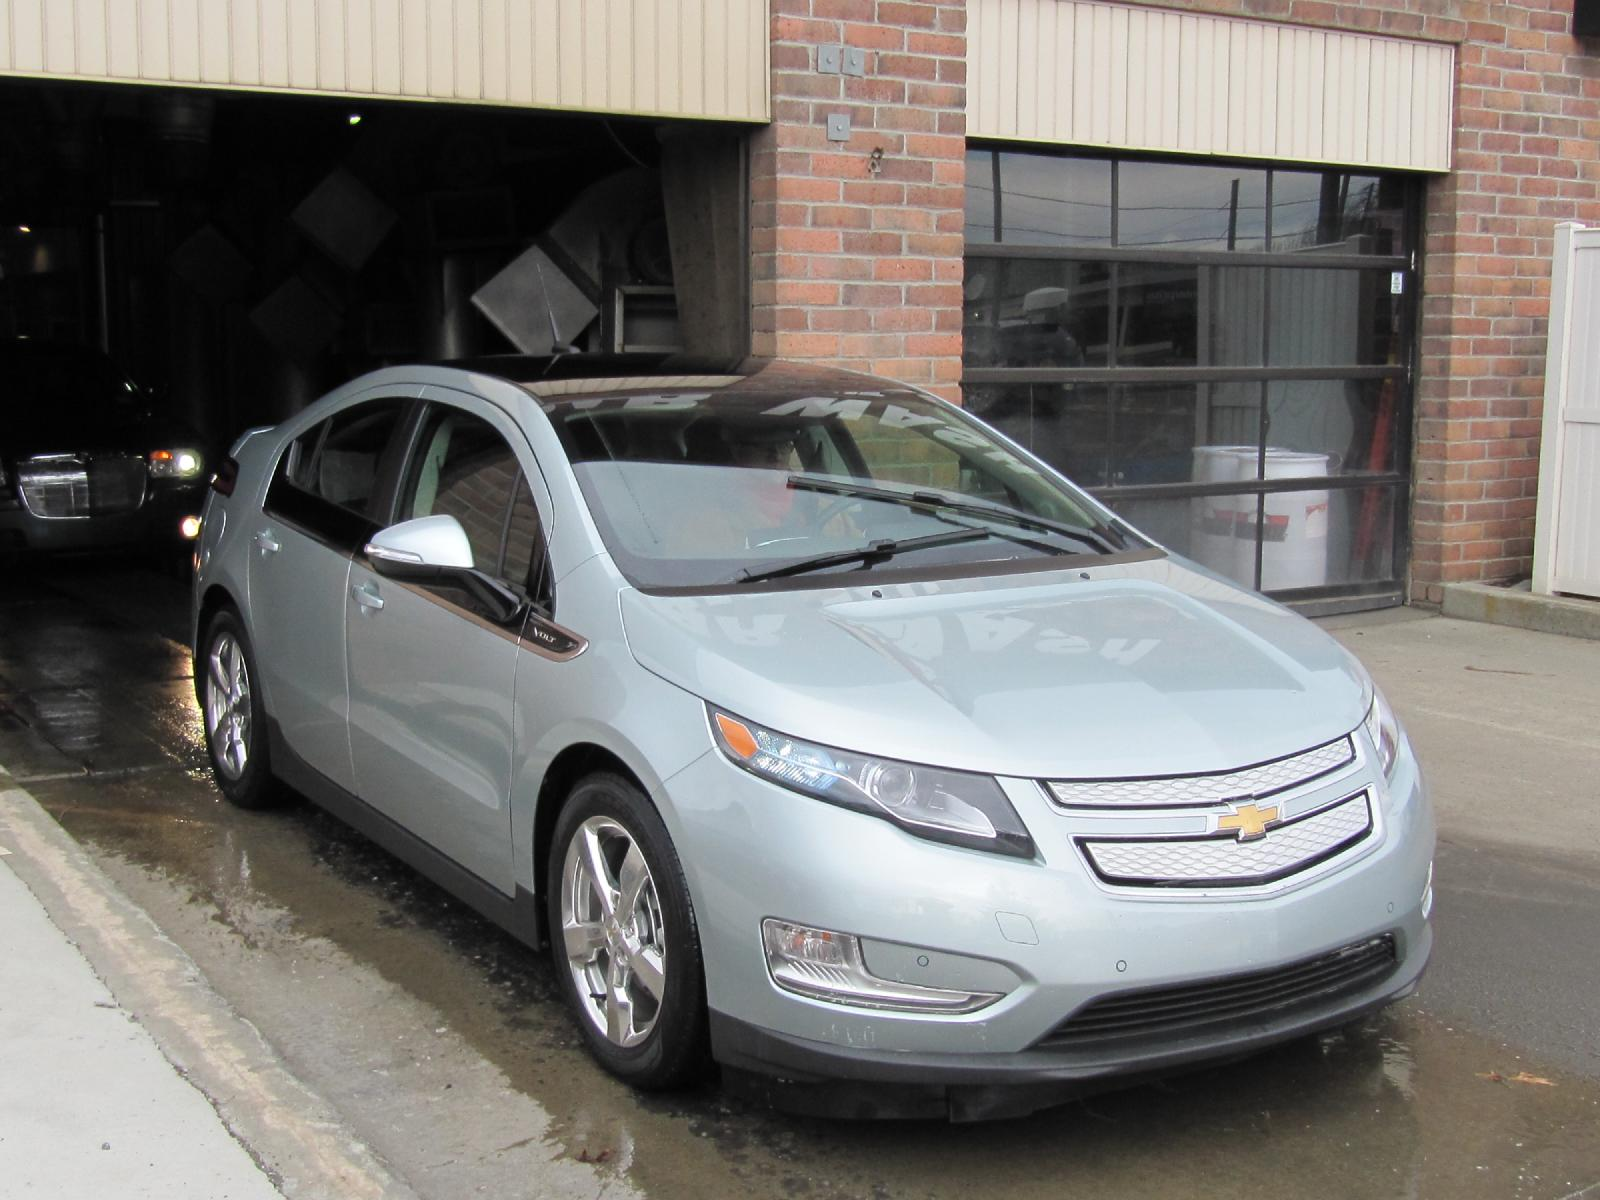 2011 Chevy Volt Gets Five Stars For Overall Safety From NHTSA